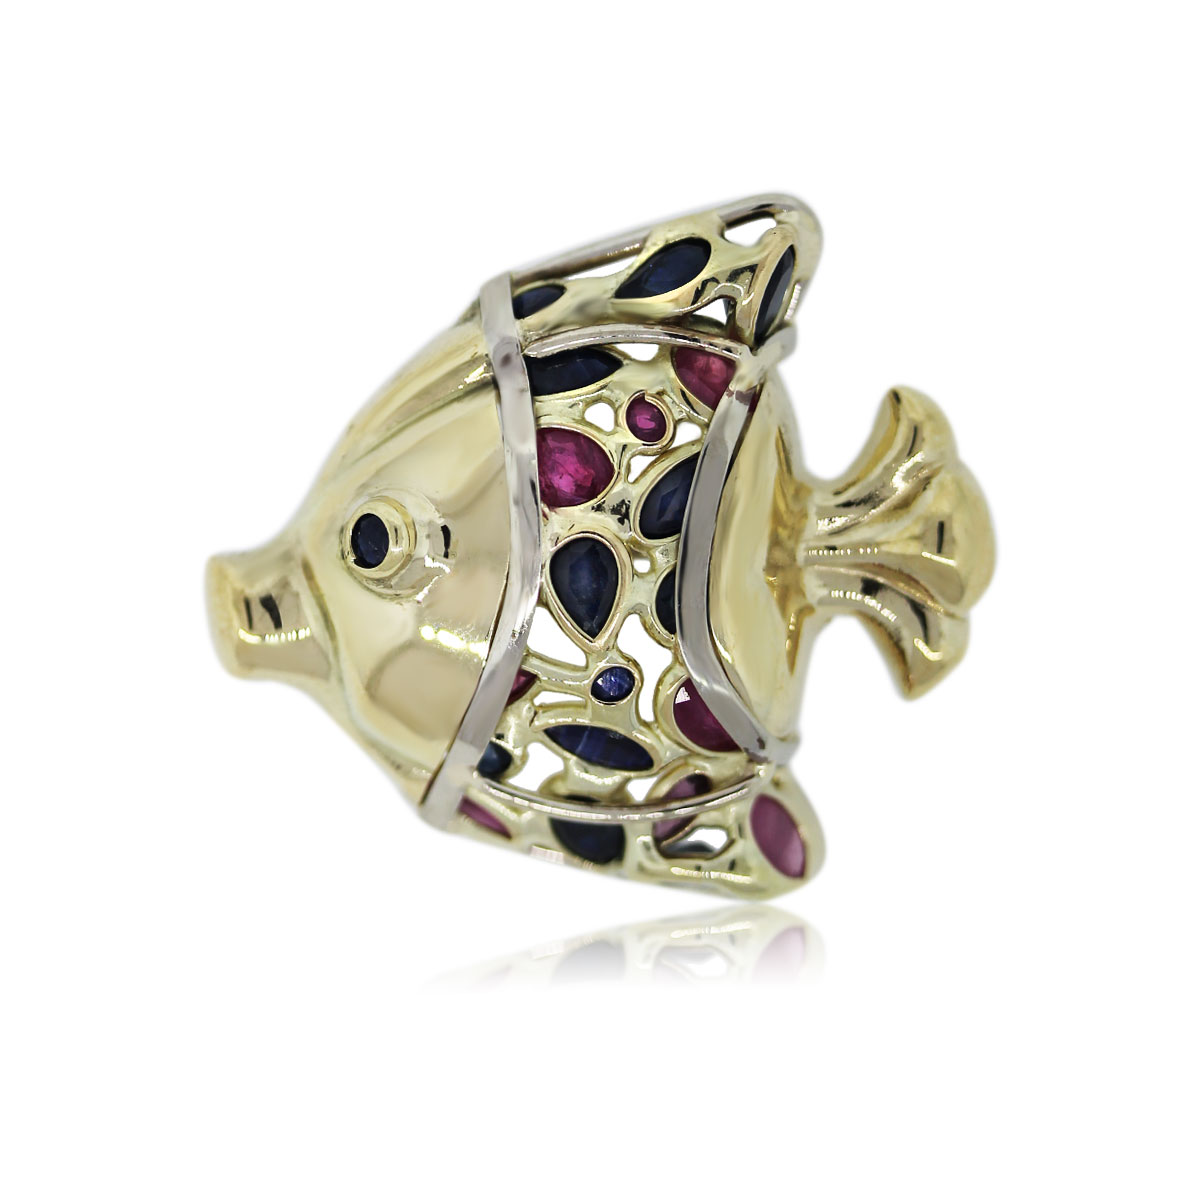 Look at This Chiq Sapphire and Ruby Pin!